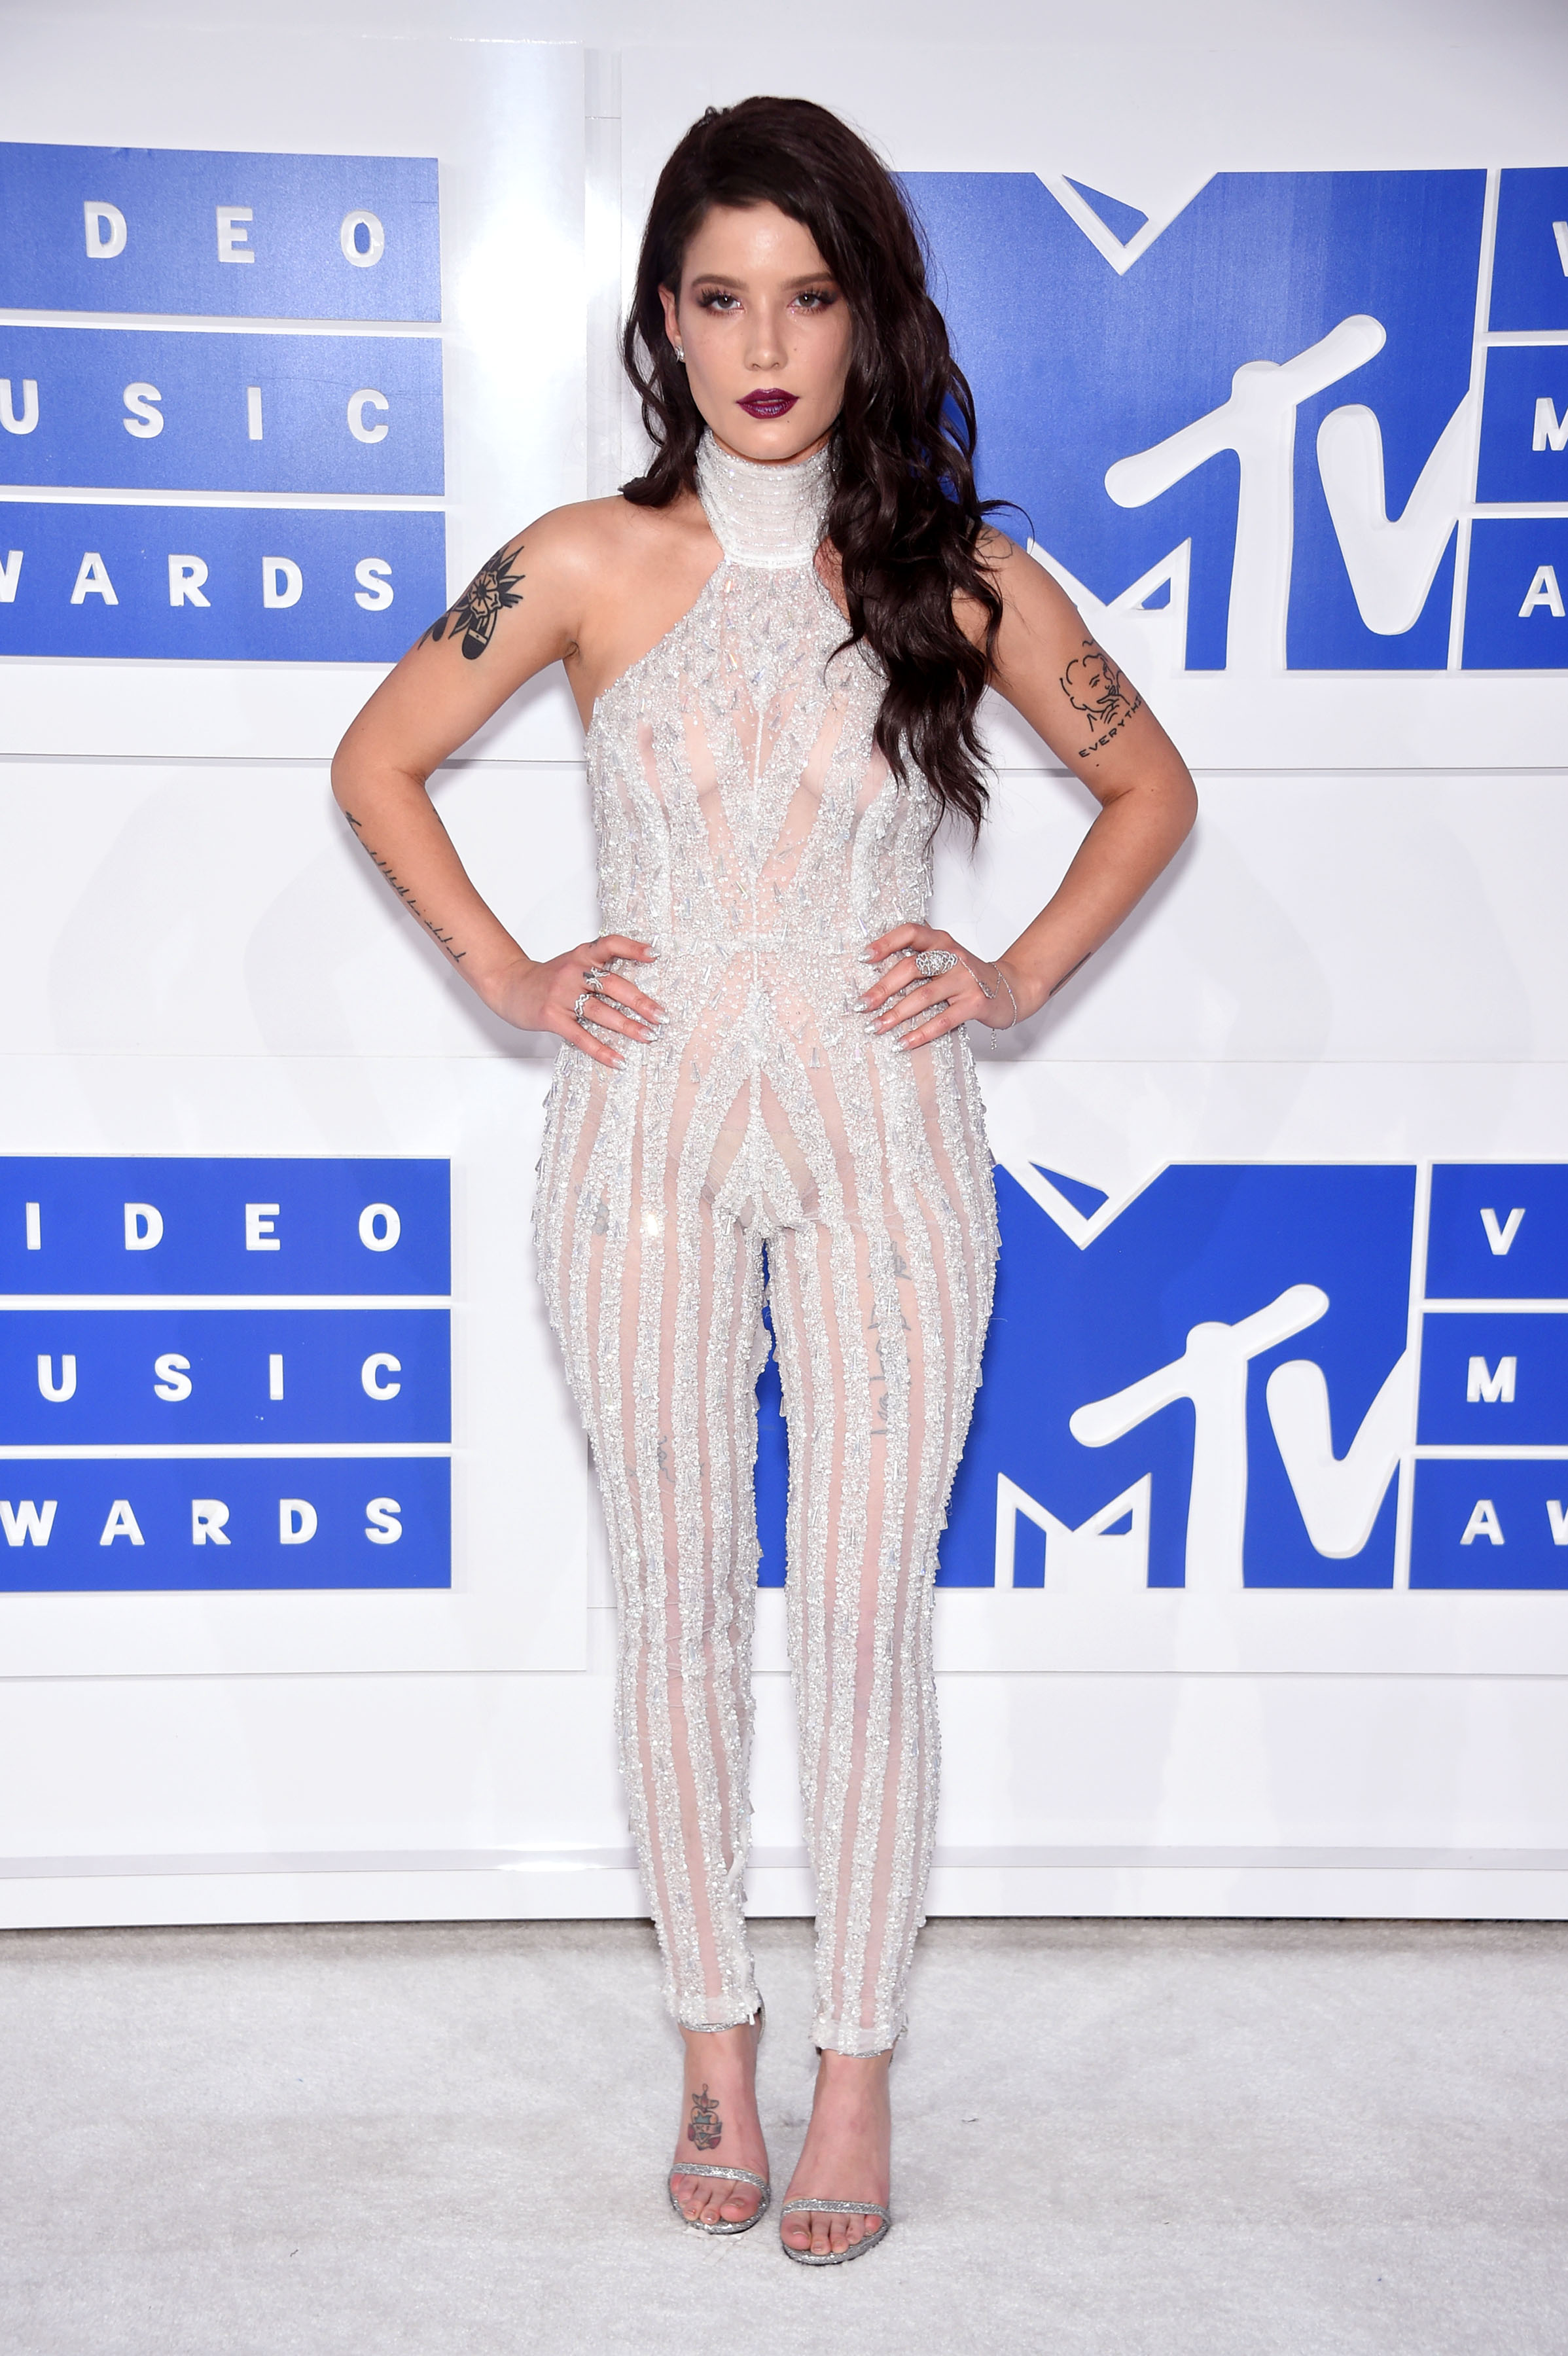 Halsey attends the 2016 MTV Video Music Awards at Madison Square Garden on Aug. 28, 2016 in New York City.